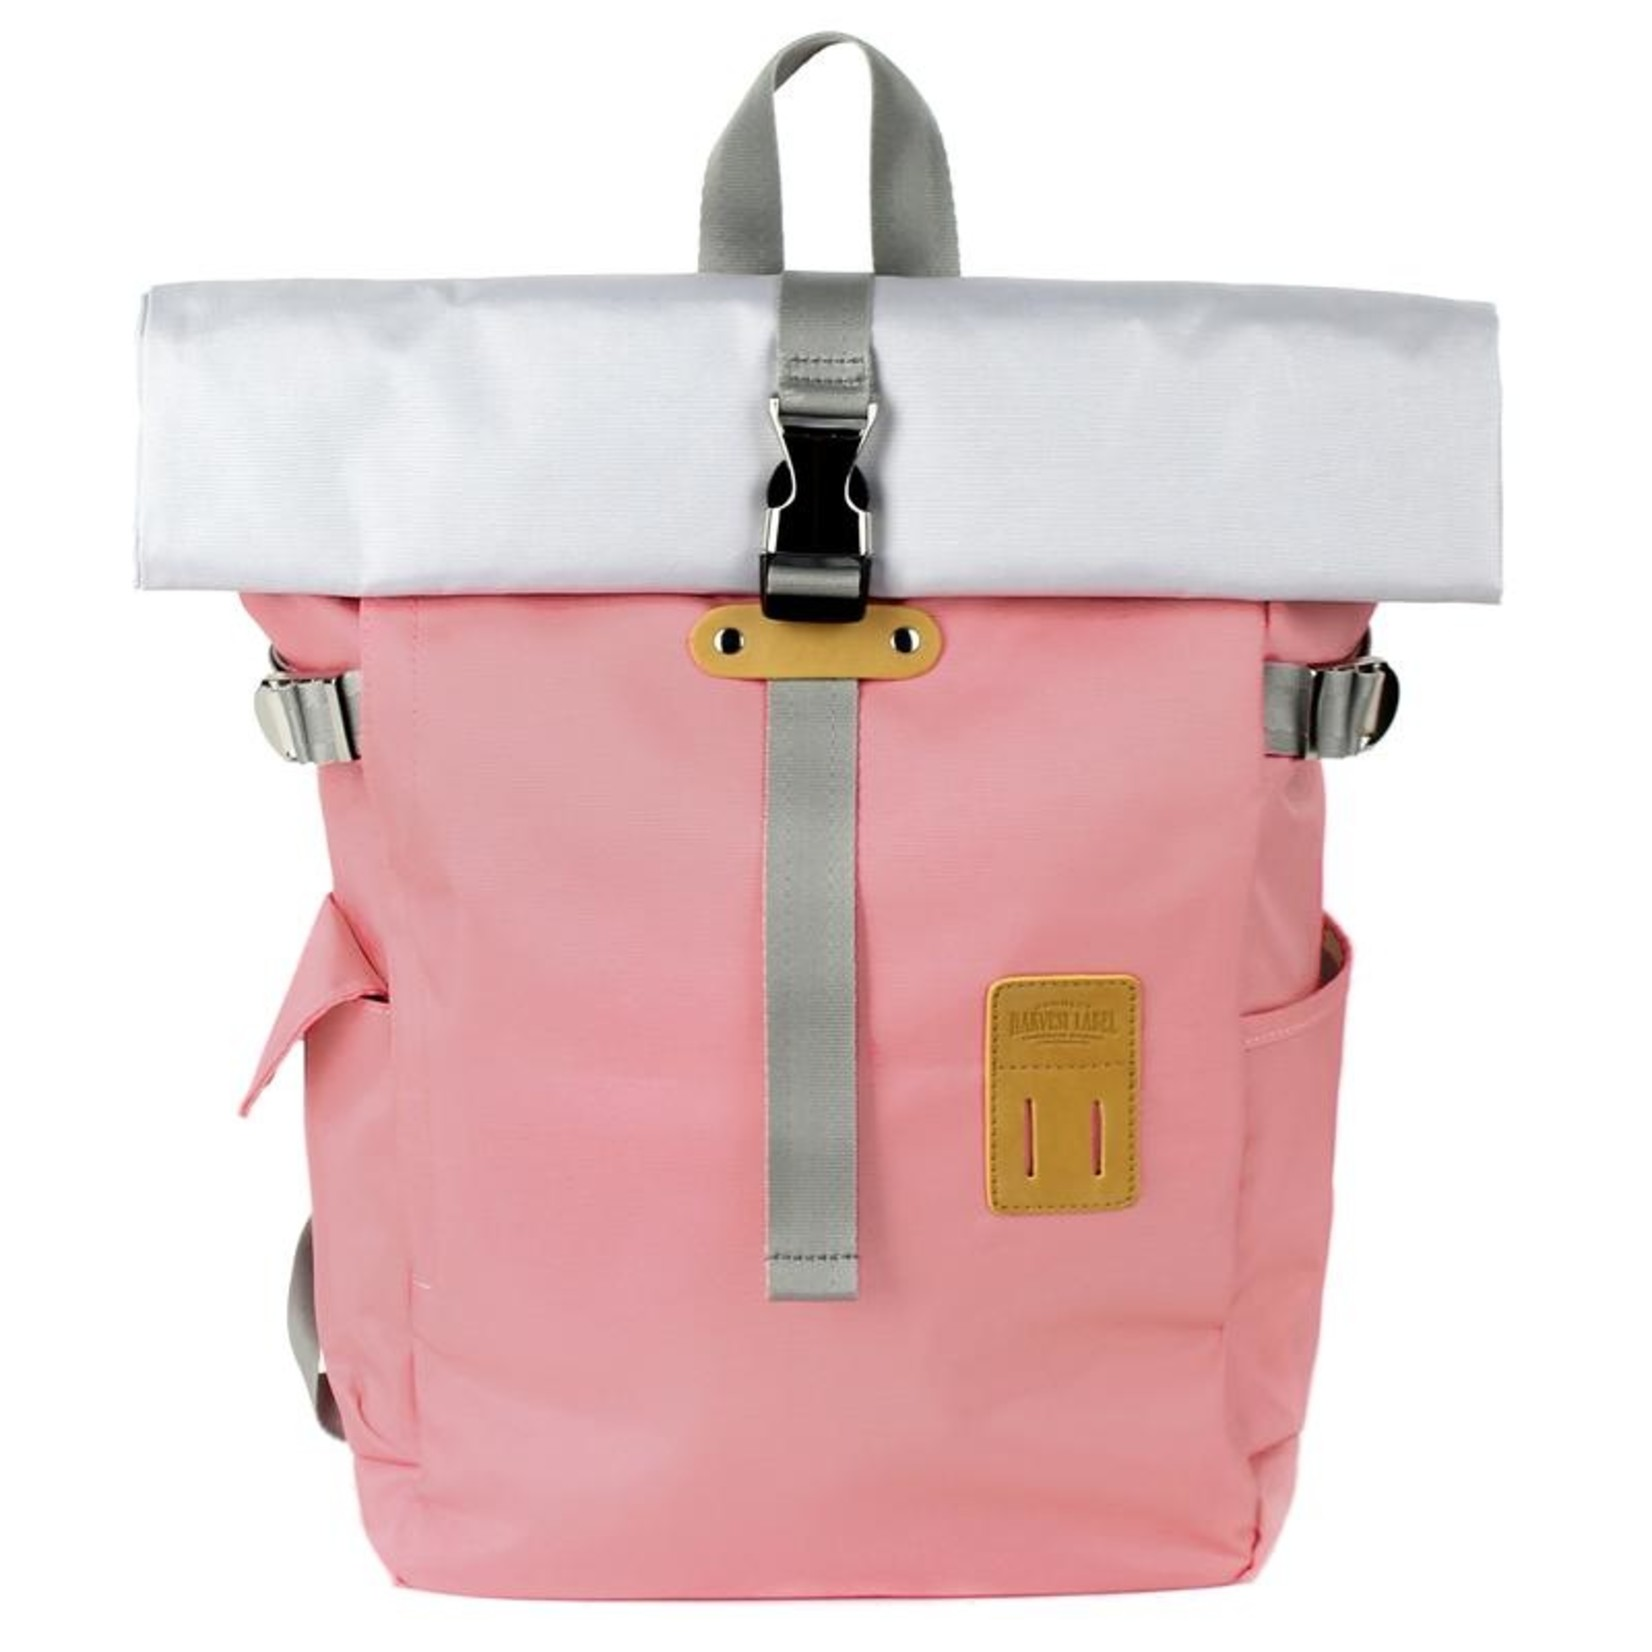 Molla Space Rolltop Backpack 2.0 - Pink